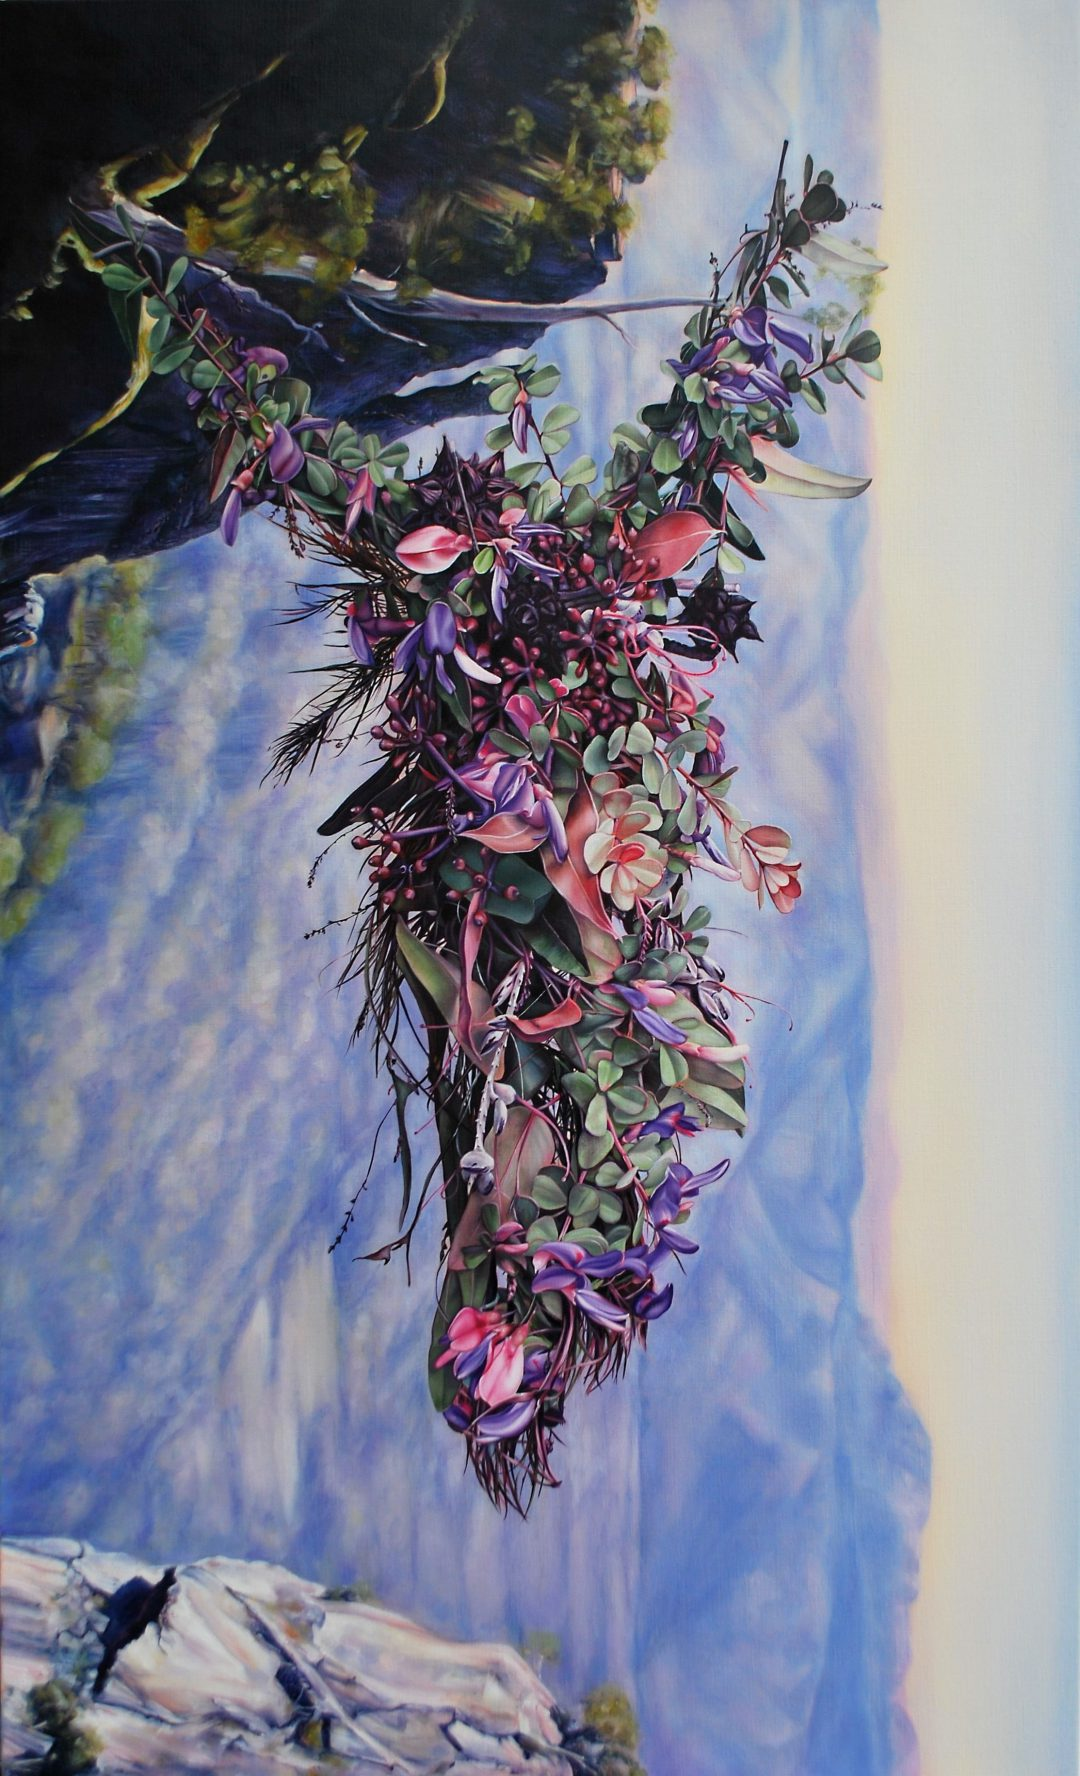 Gina Kalabishis, Arete no.3 2016 oil on linen 152 x 91 cm Winner of the 2017 People's Choice Prize